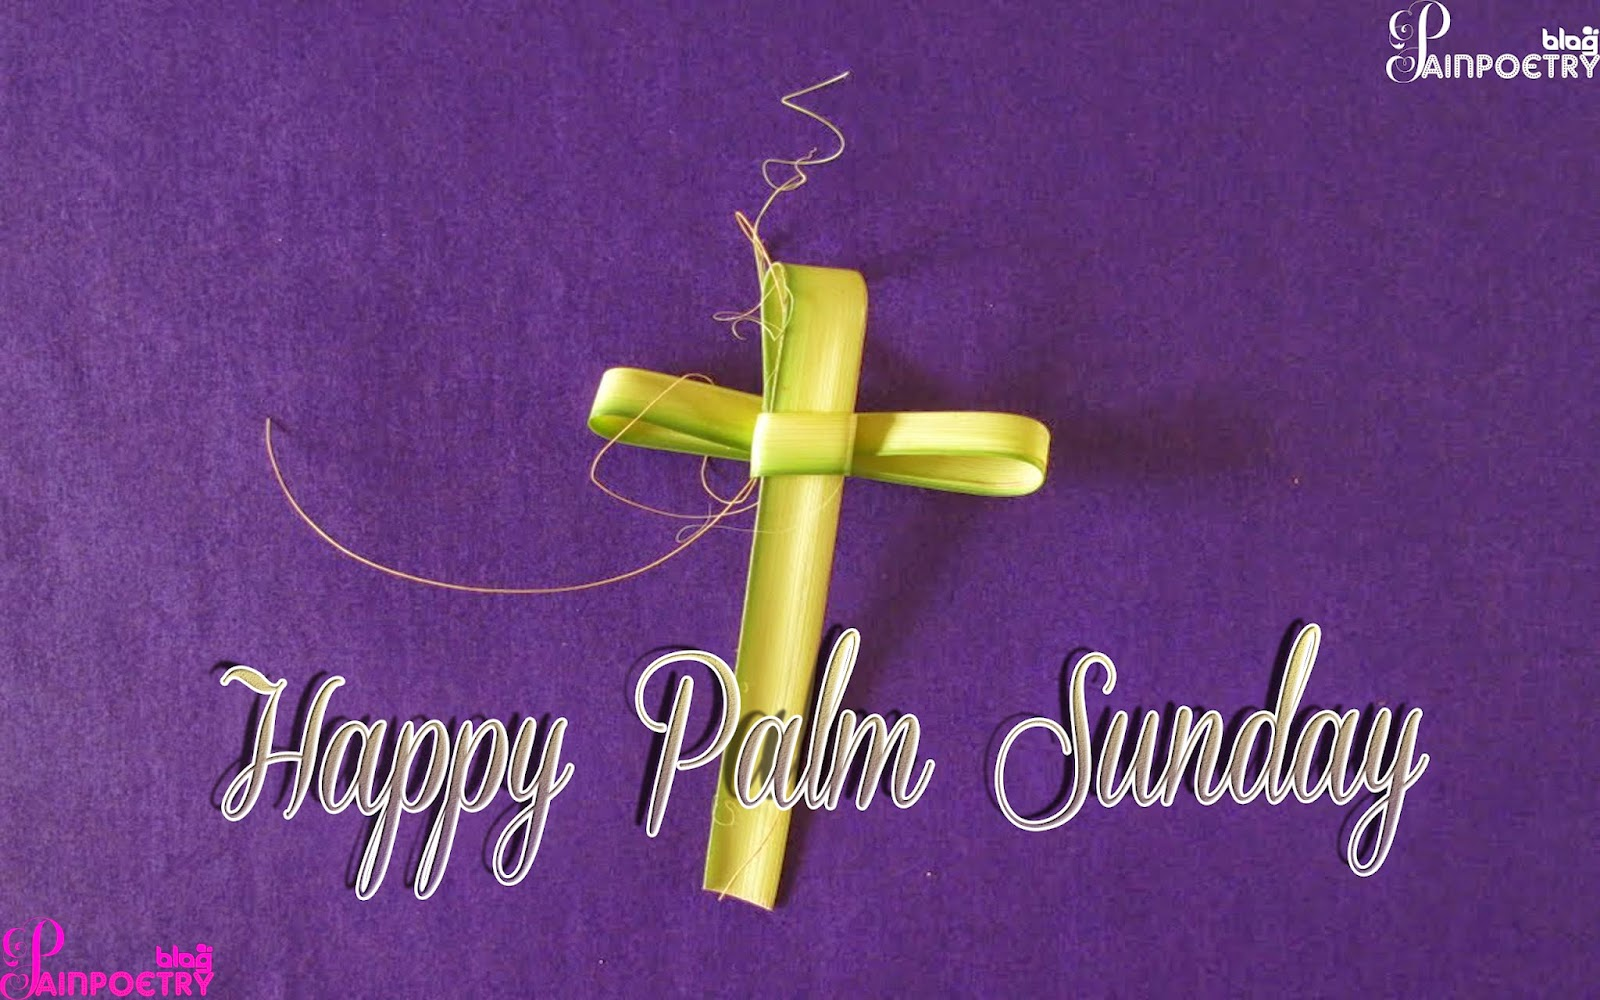 palm sunday 2017 - photo #33